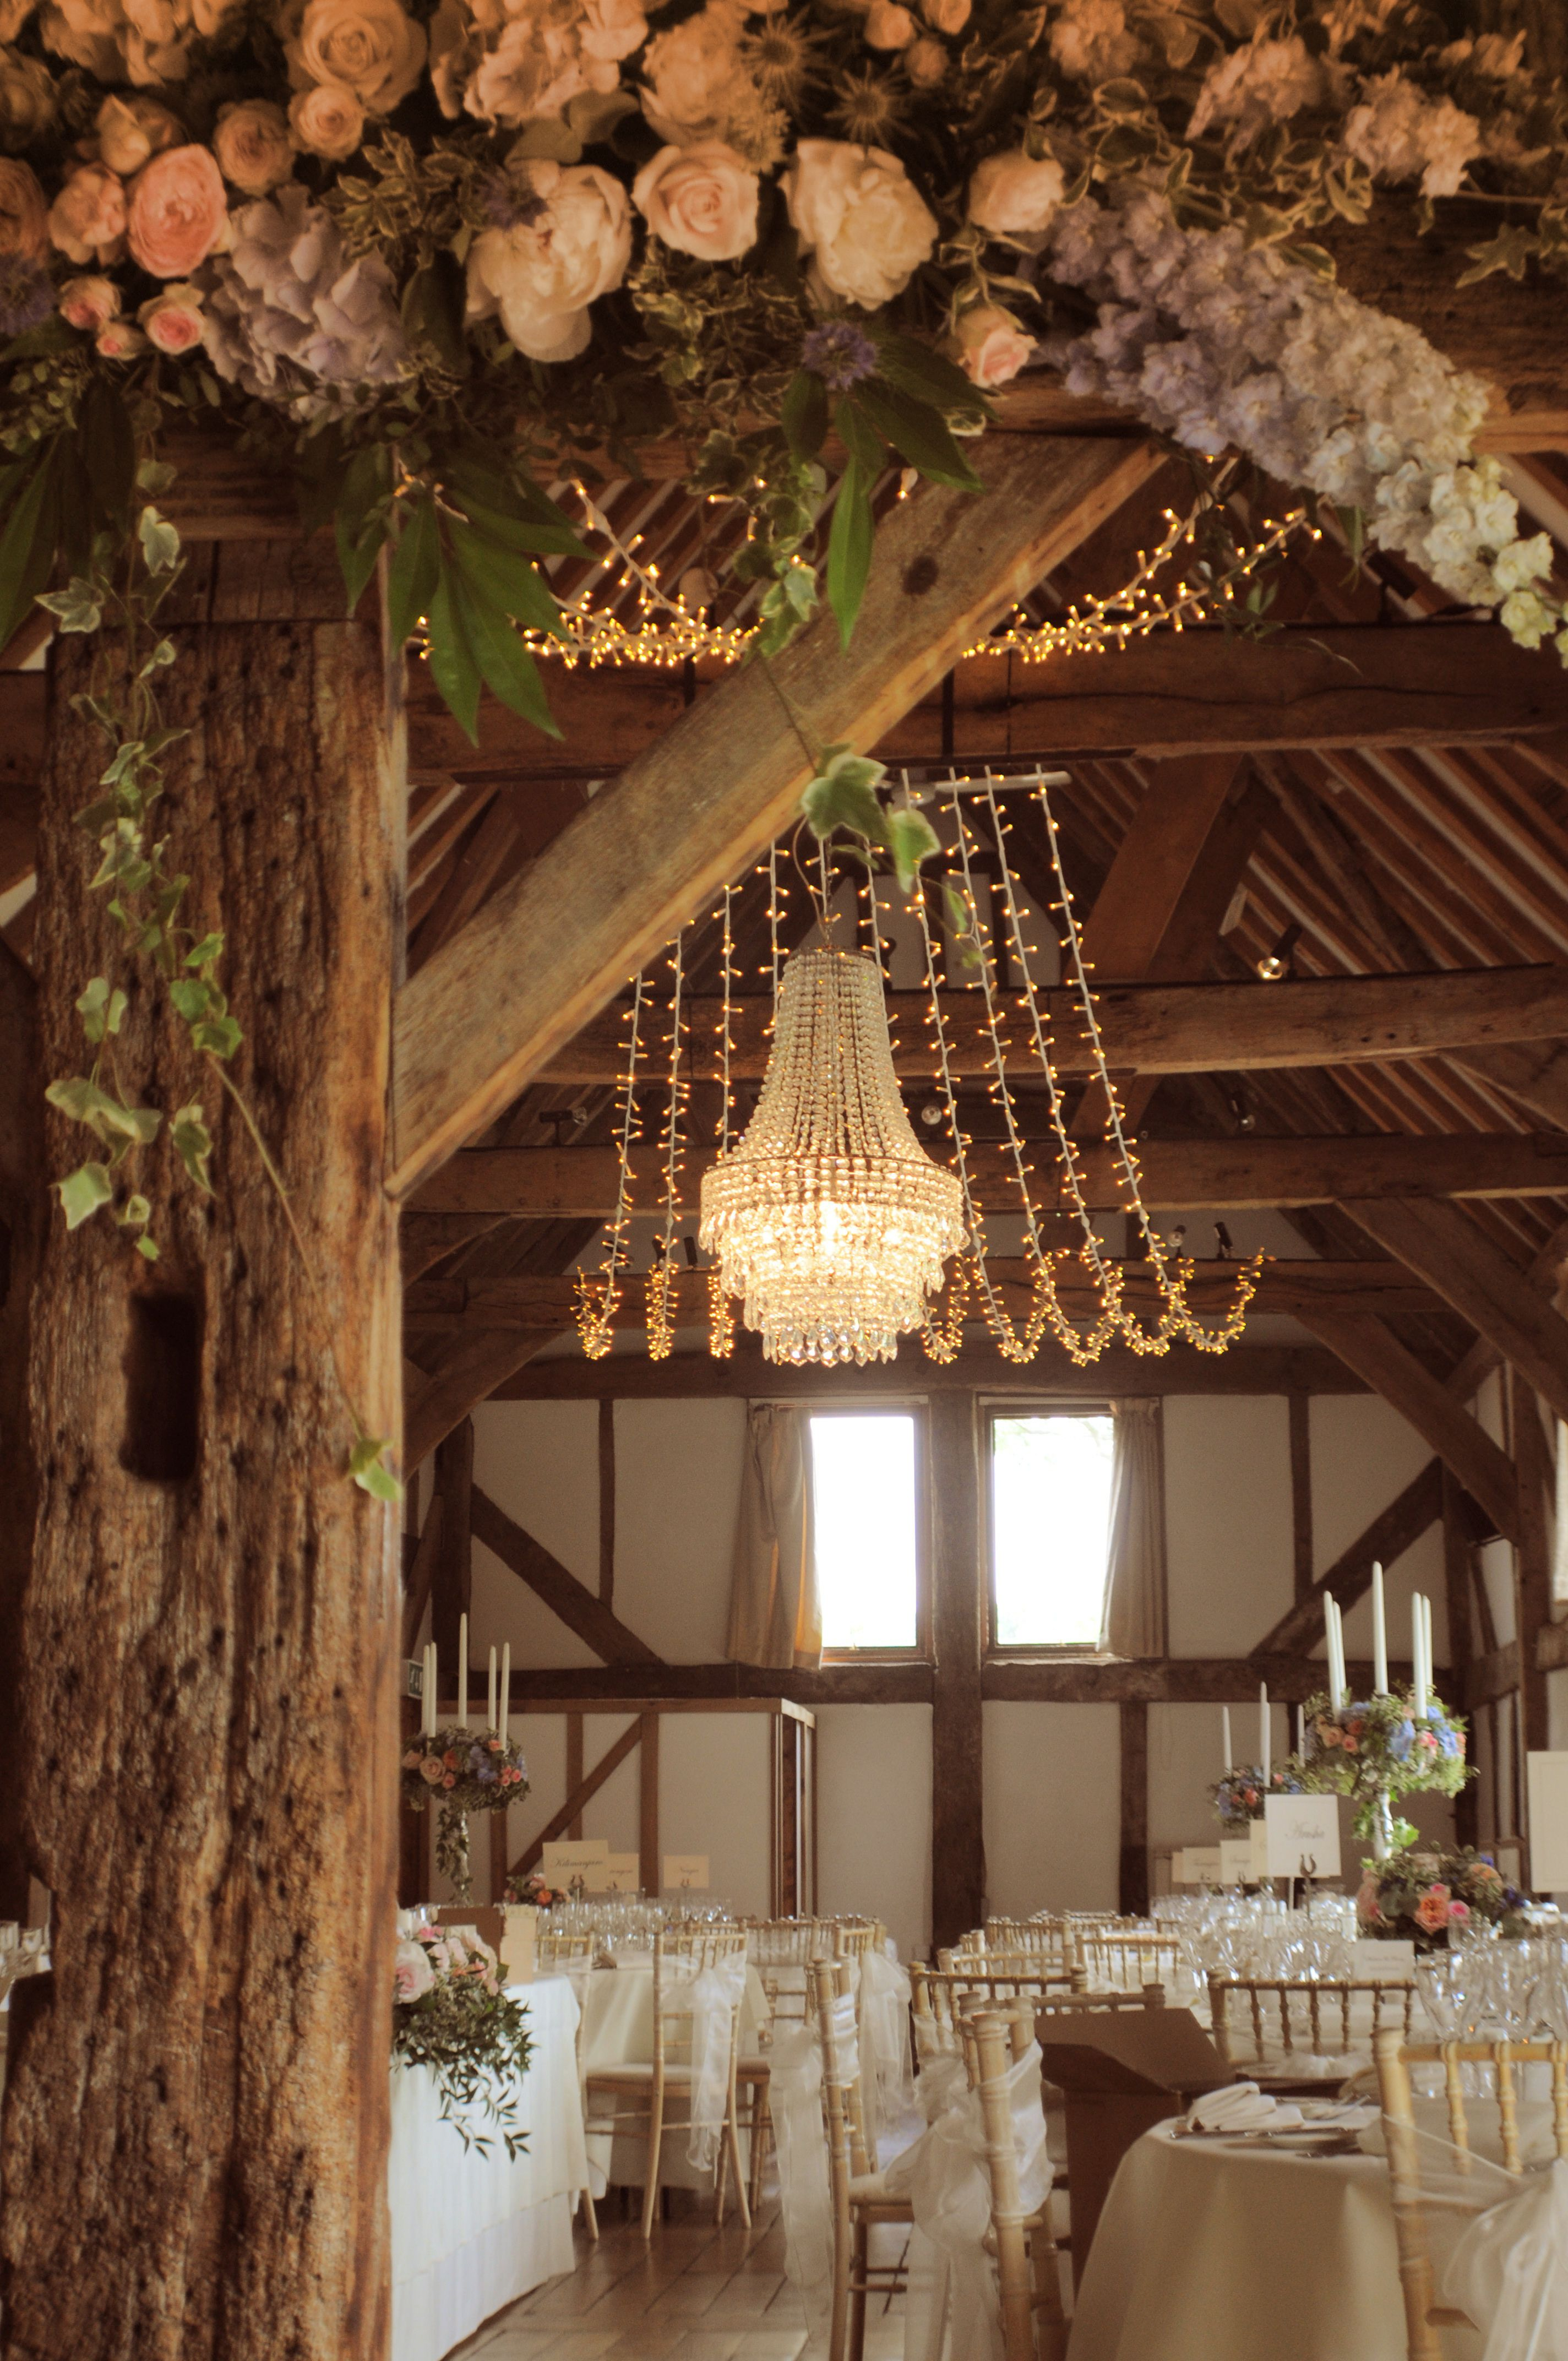 Crystal Wedding Chandelier With A Fairy Light Canopy At The